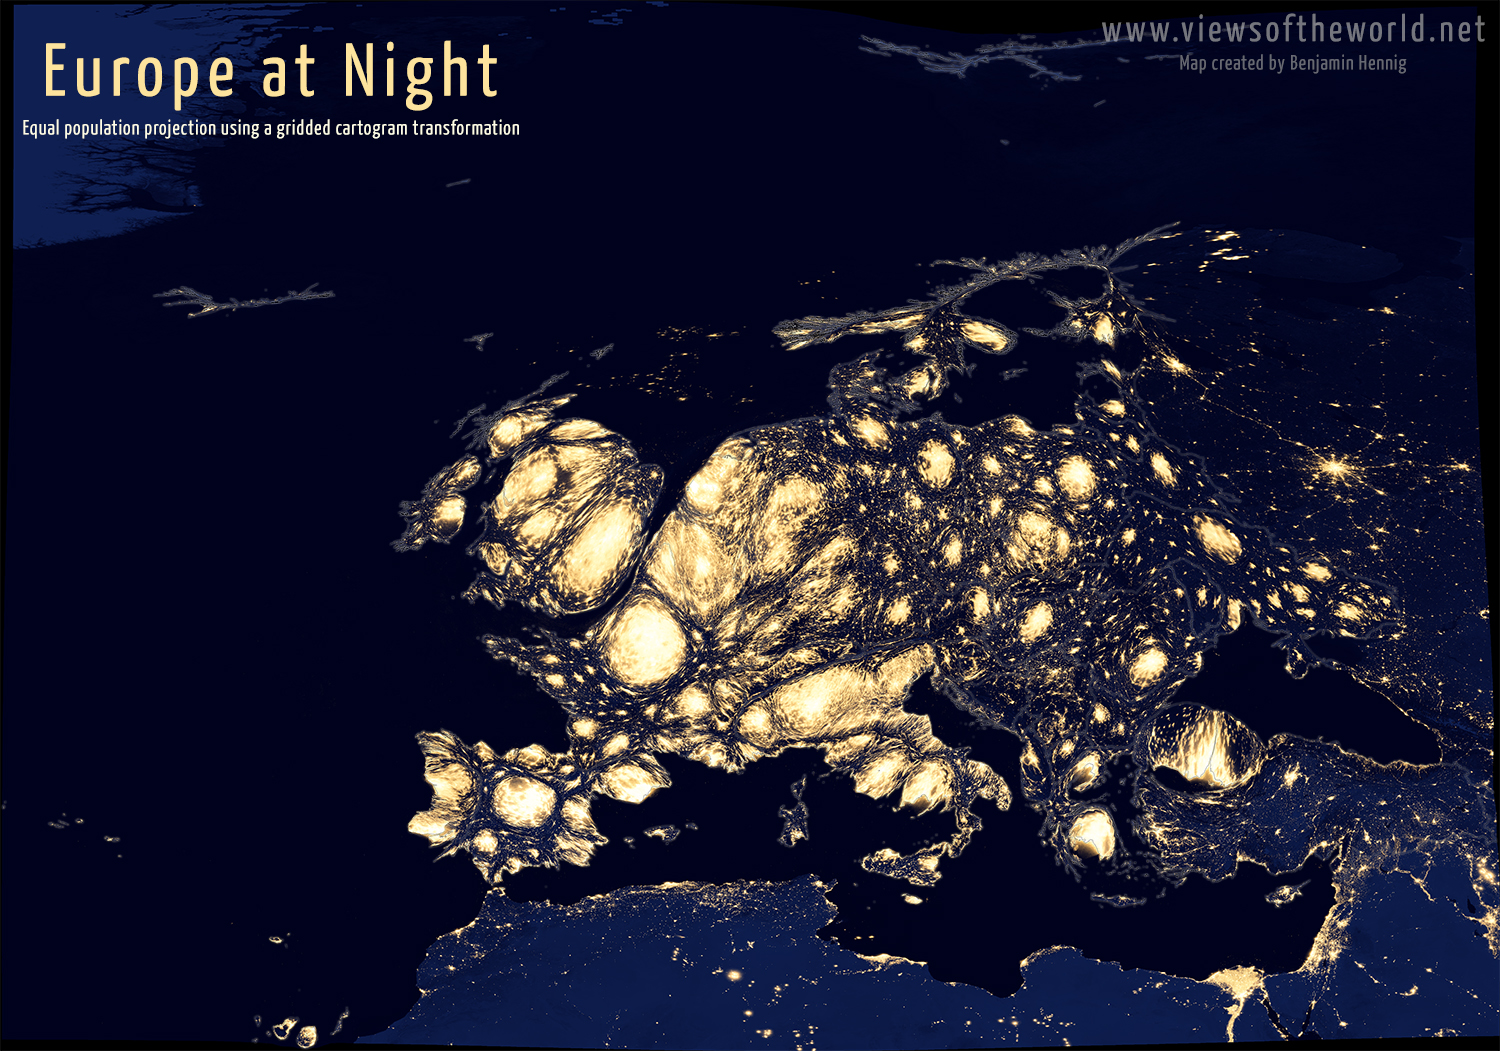 Europe at night views of the world equal population projection map of europe at night gumiabroncs Image collections